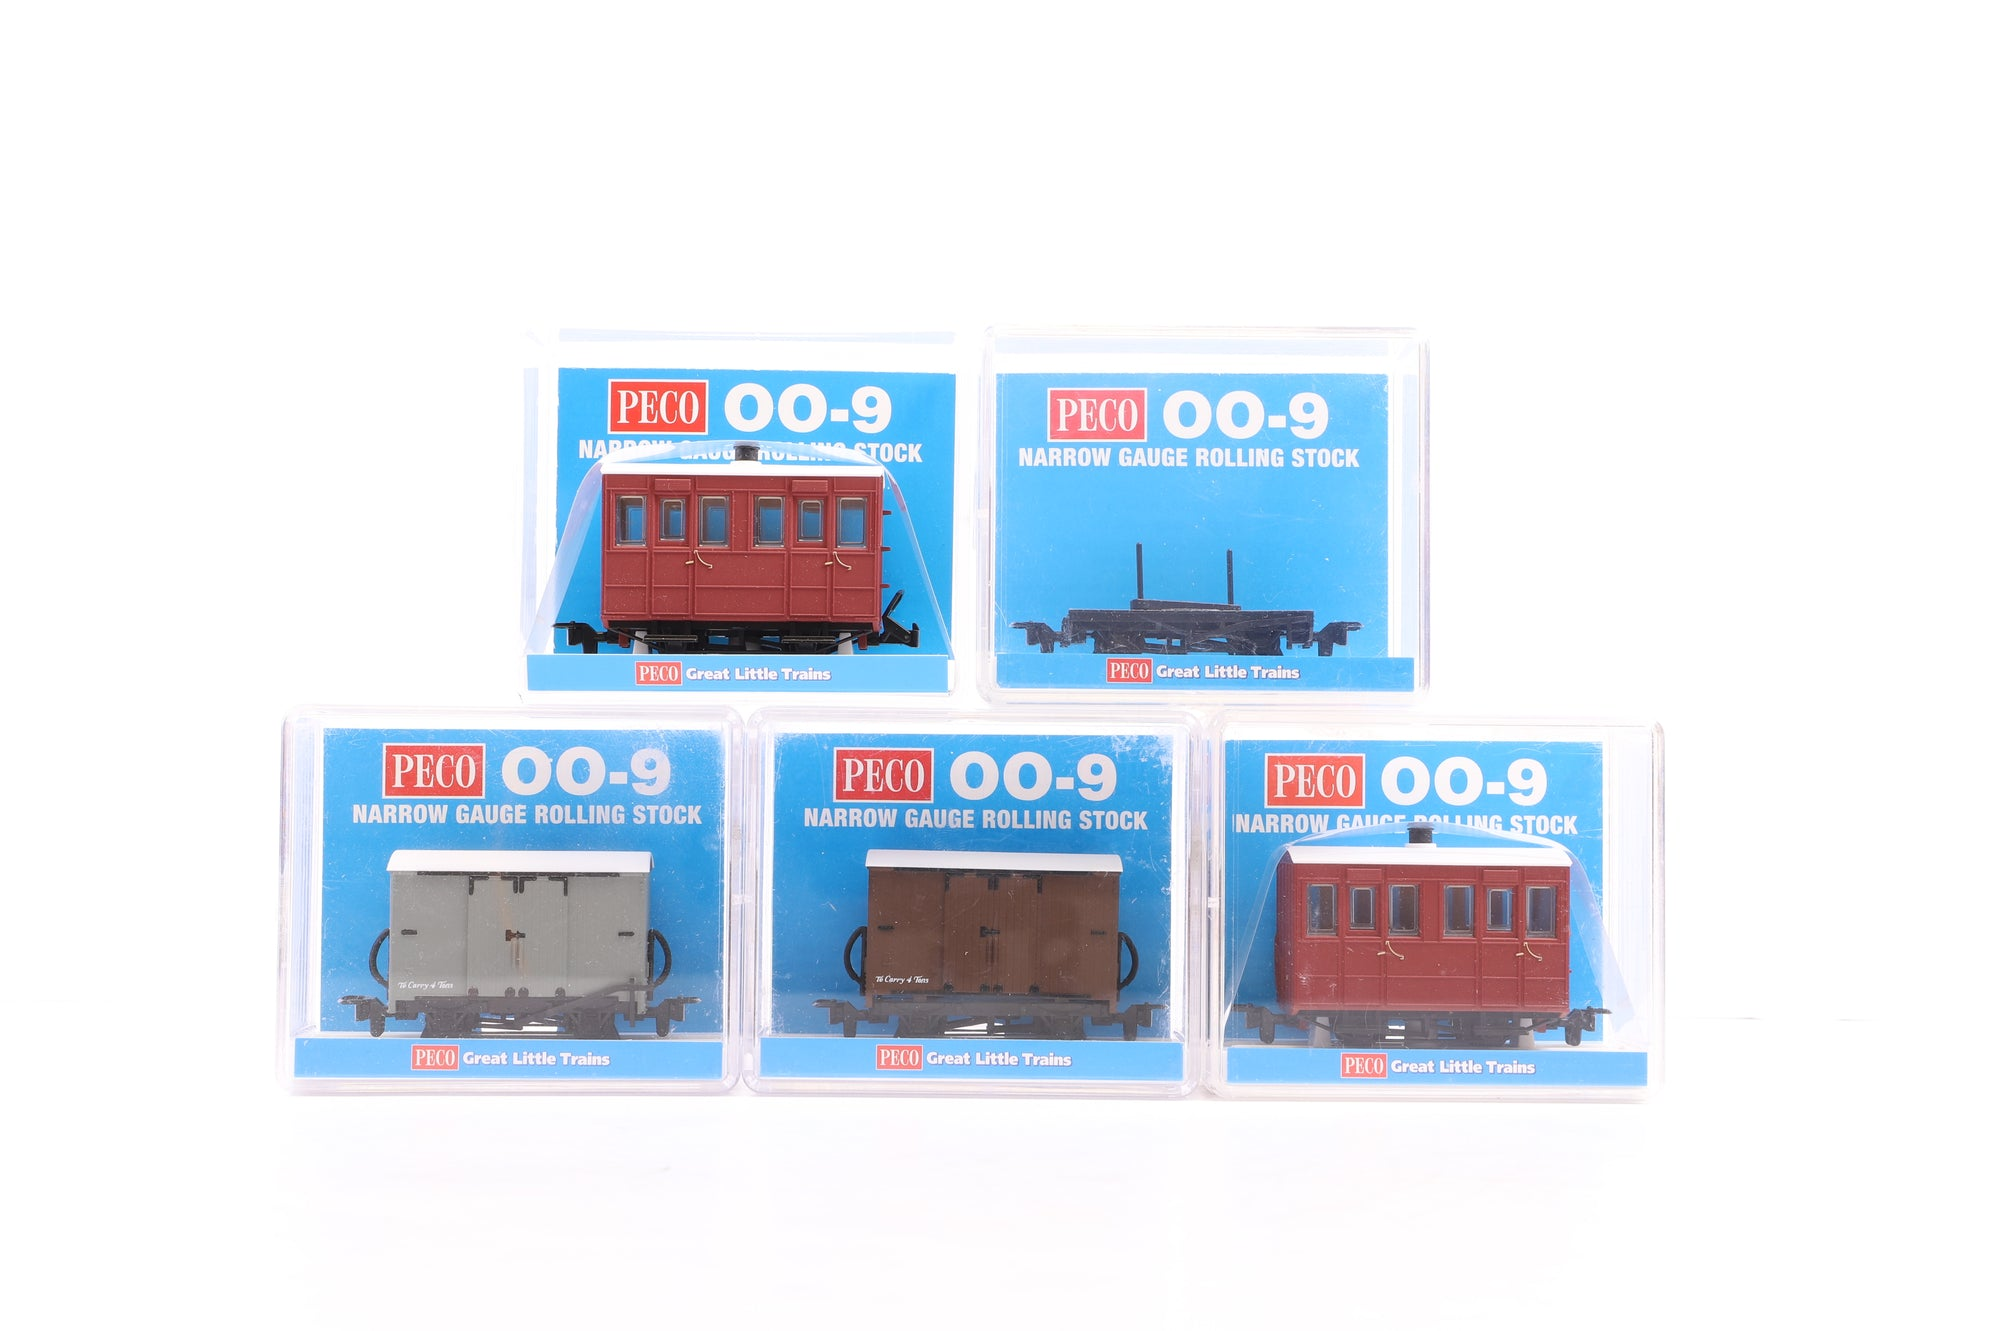 Peco OO-9 Rake of 3 Wagons (2 x Box Vans & 1 Bogie Bolster) & 2 x Glyn Valley Tramway Coaches